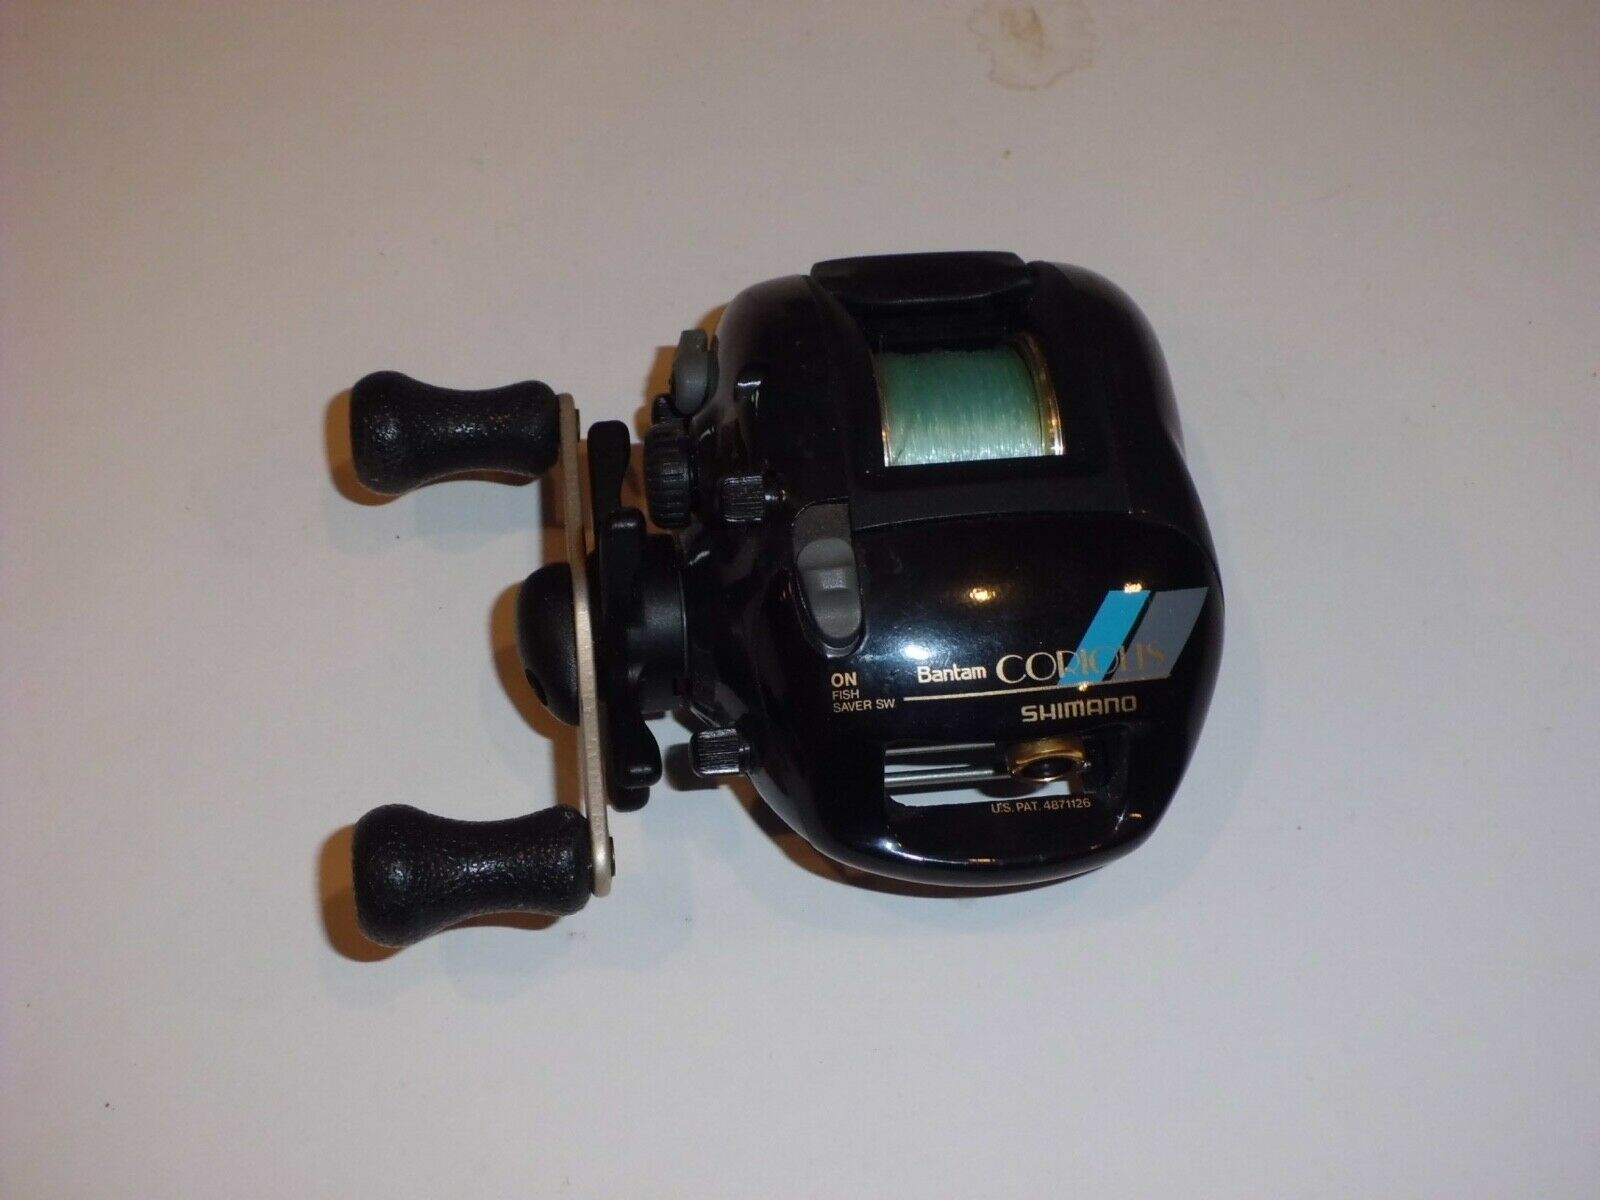 Shimano Coriolis CO-100 Baitcasting Reel made in Japan